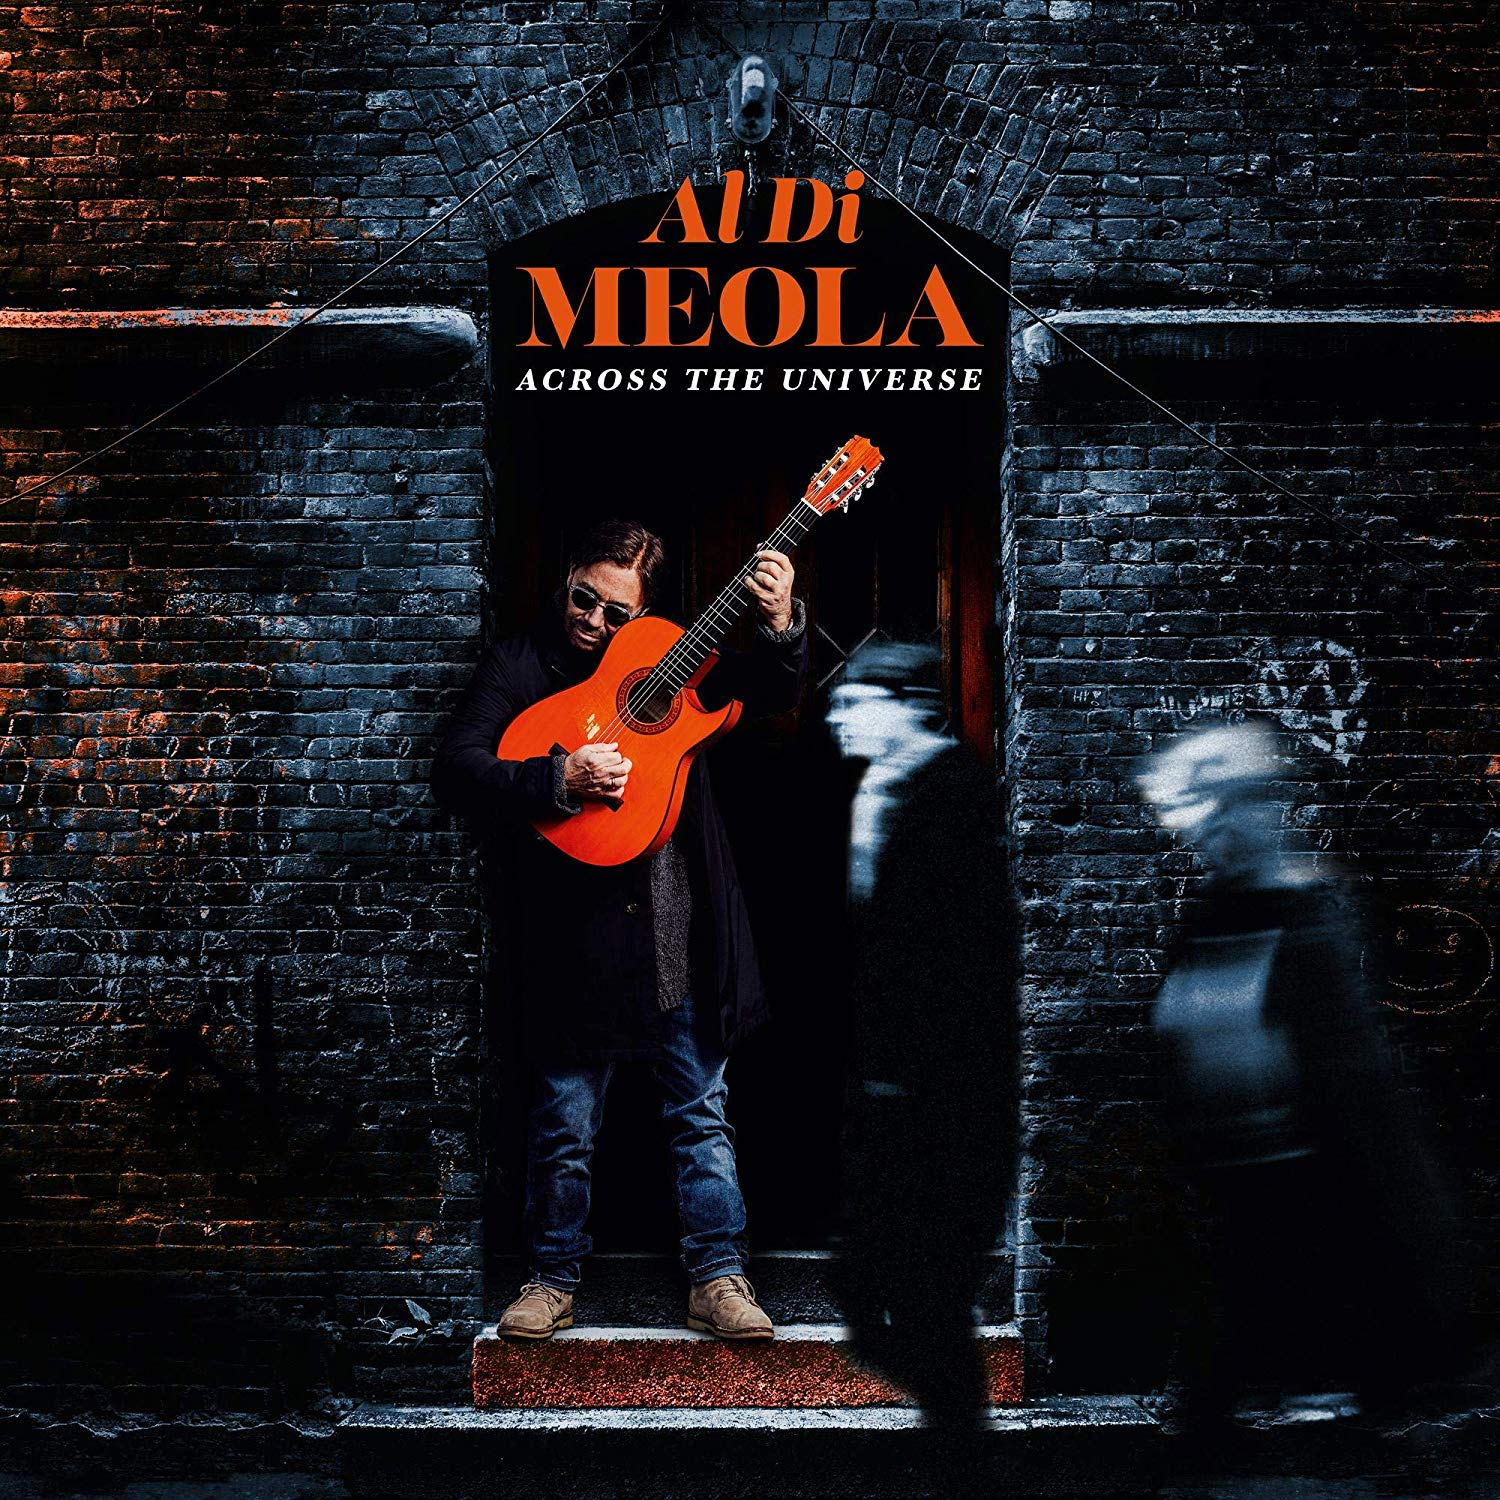 AL DI MEOLA - Across The Universe cover